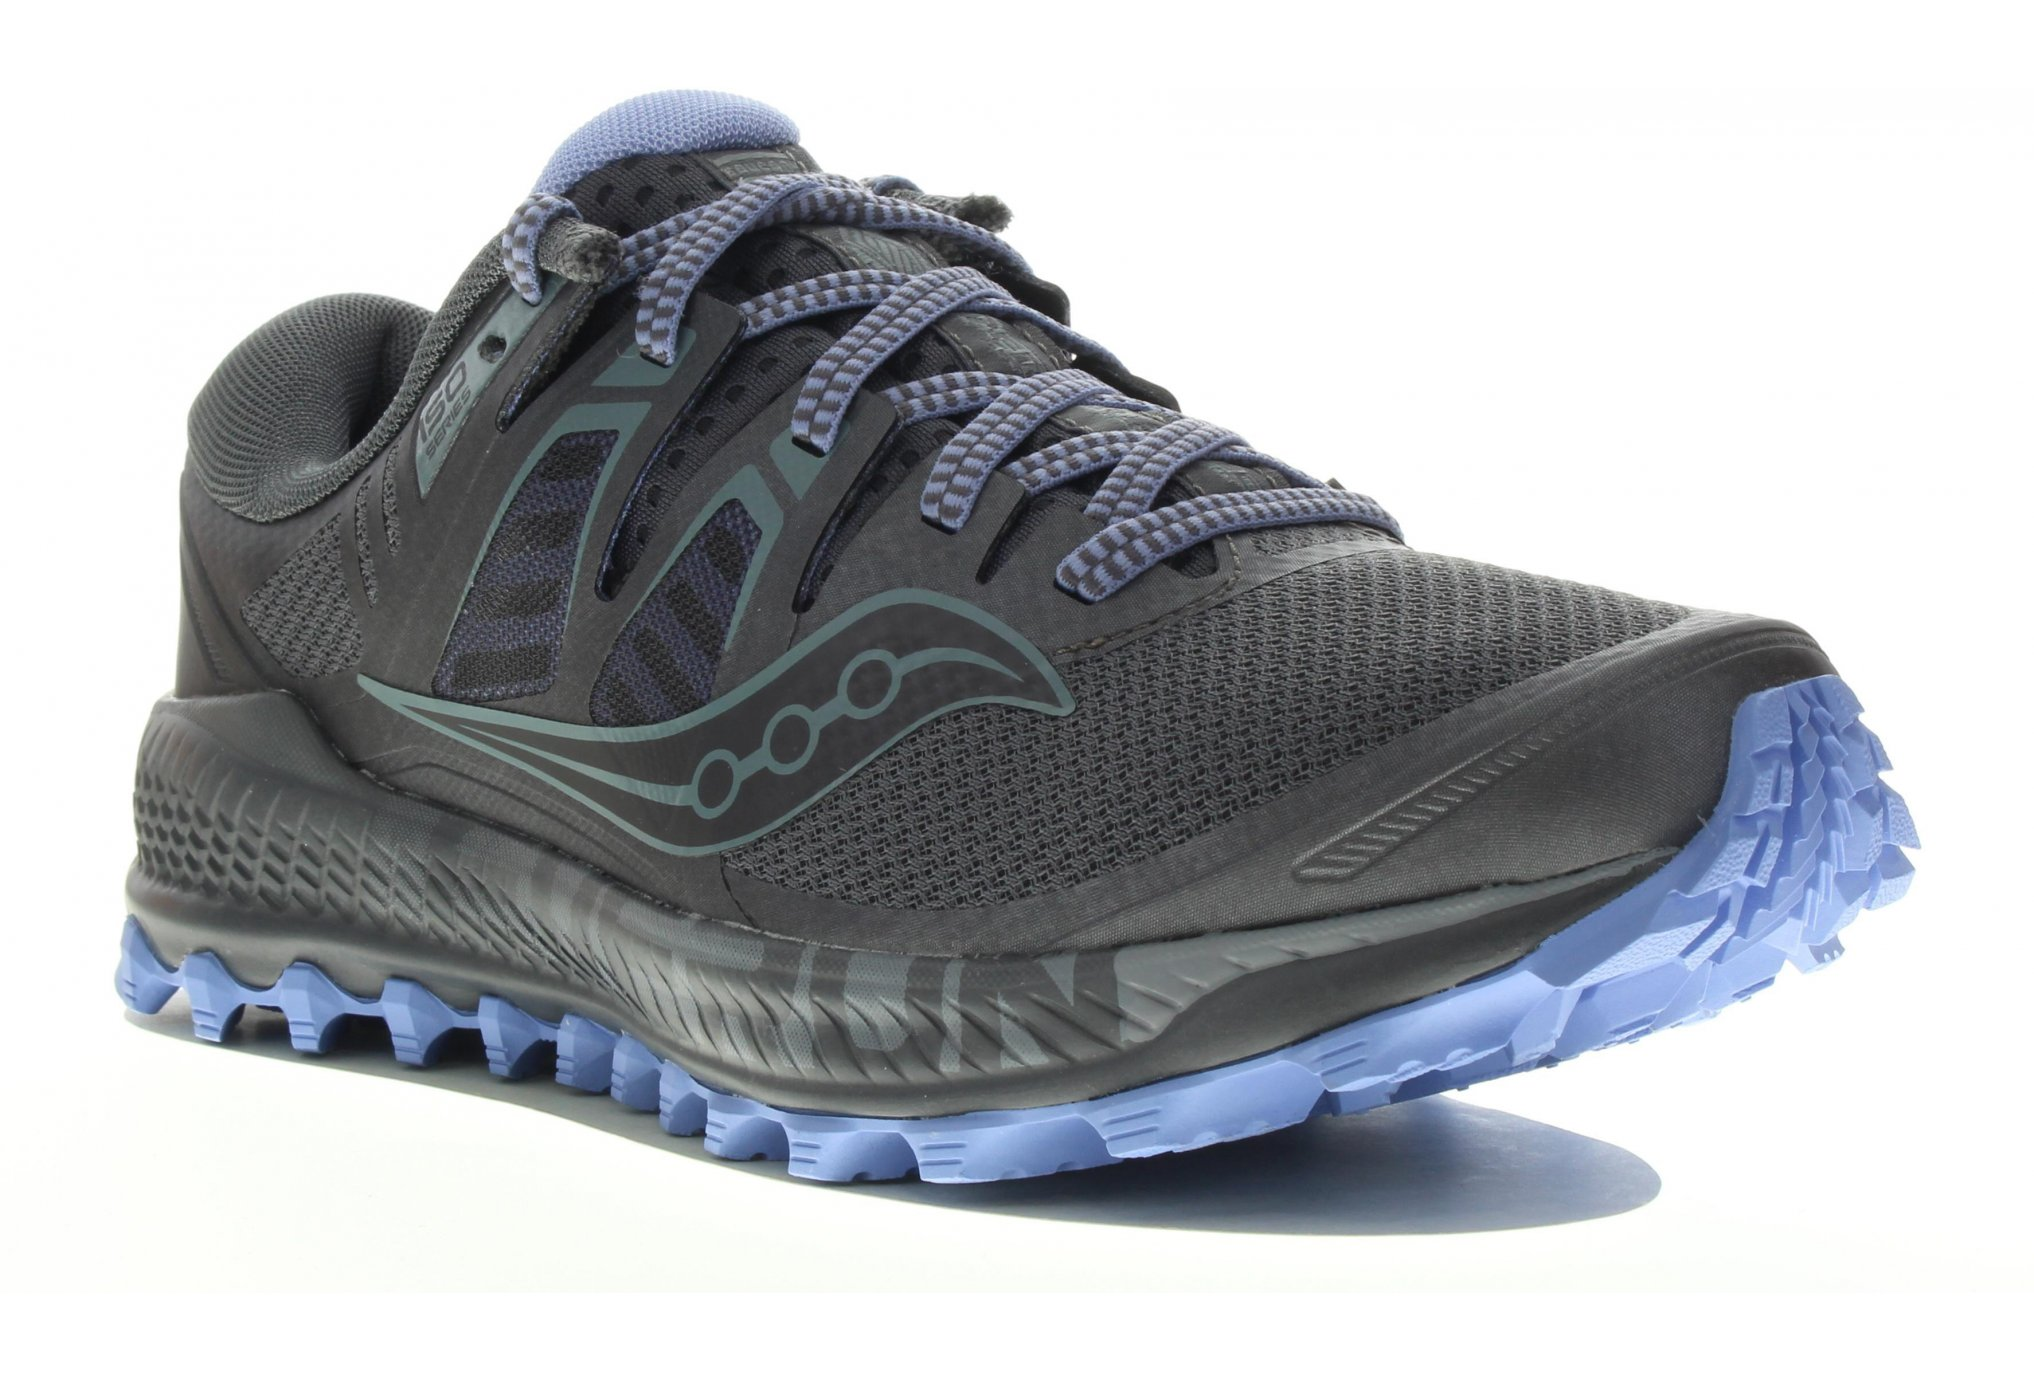 Saucony Peregrine ISO Chaussures running femme